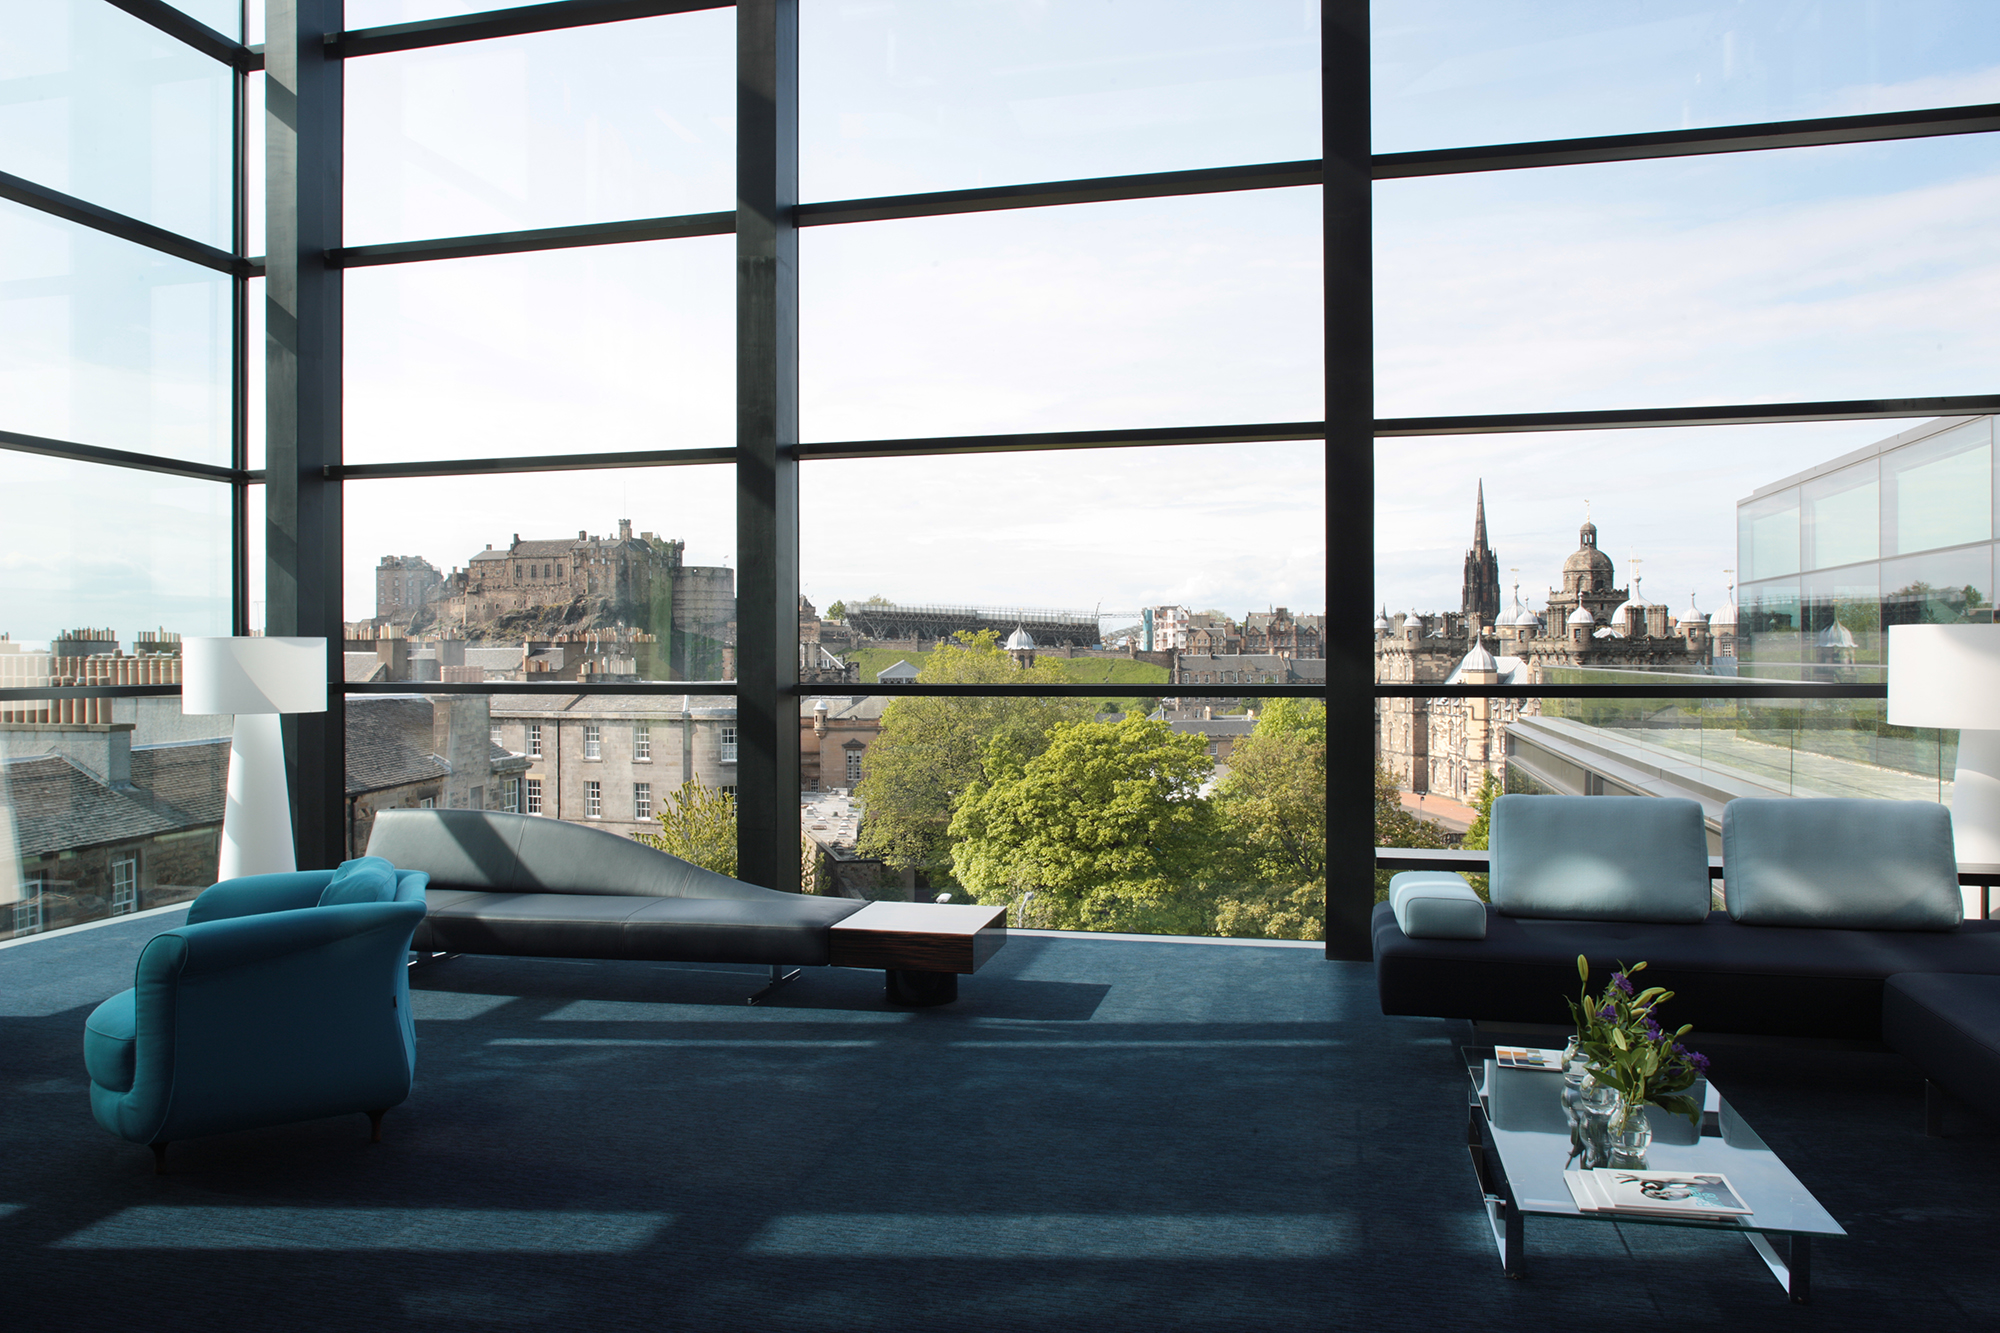 Edinburgh view | by McAteer Photograph